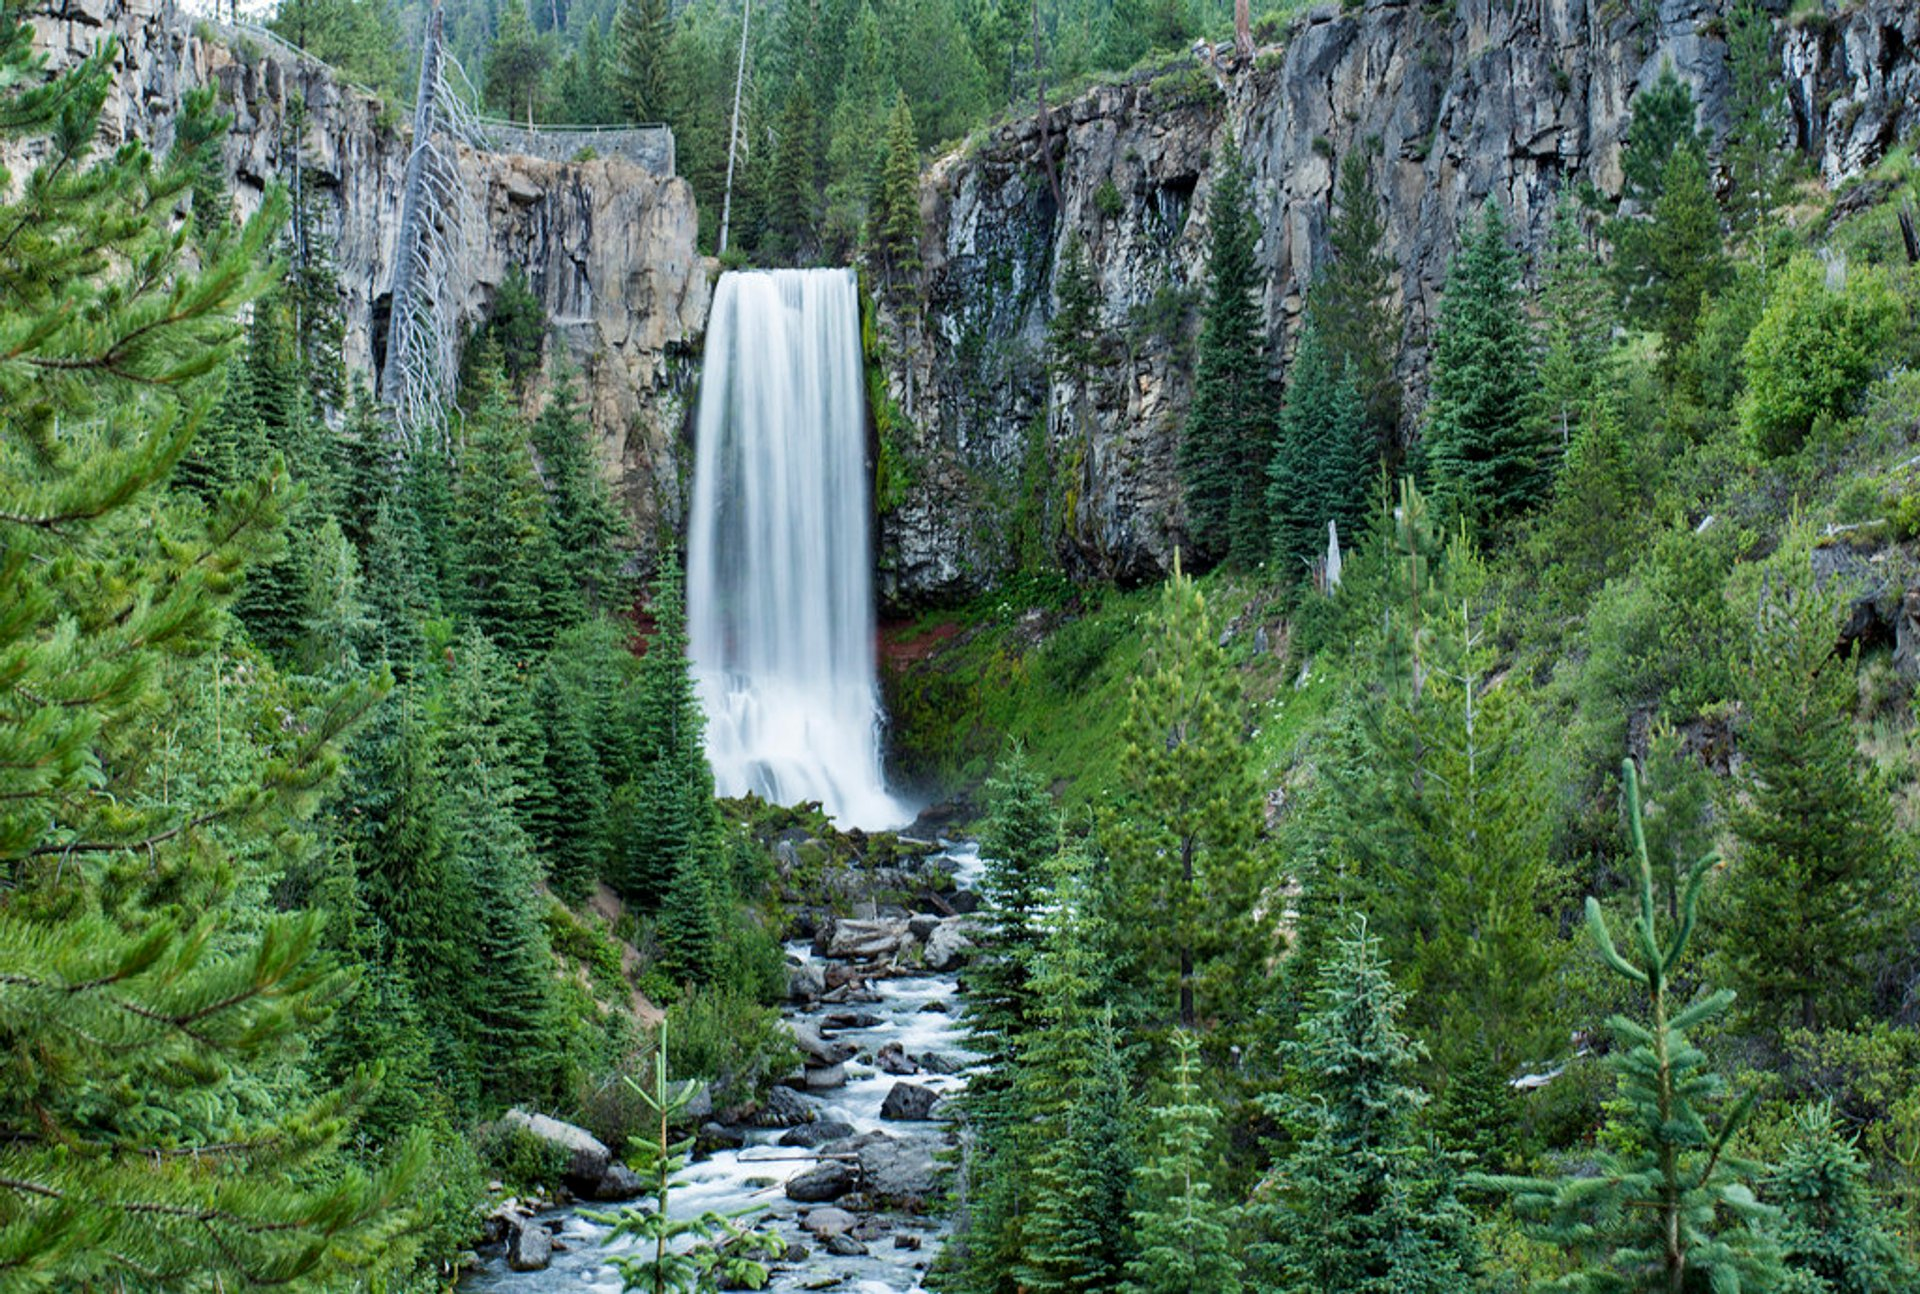 Tumalo Falls Hike in Portland 2020 - Best Time